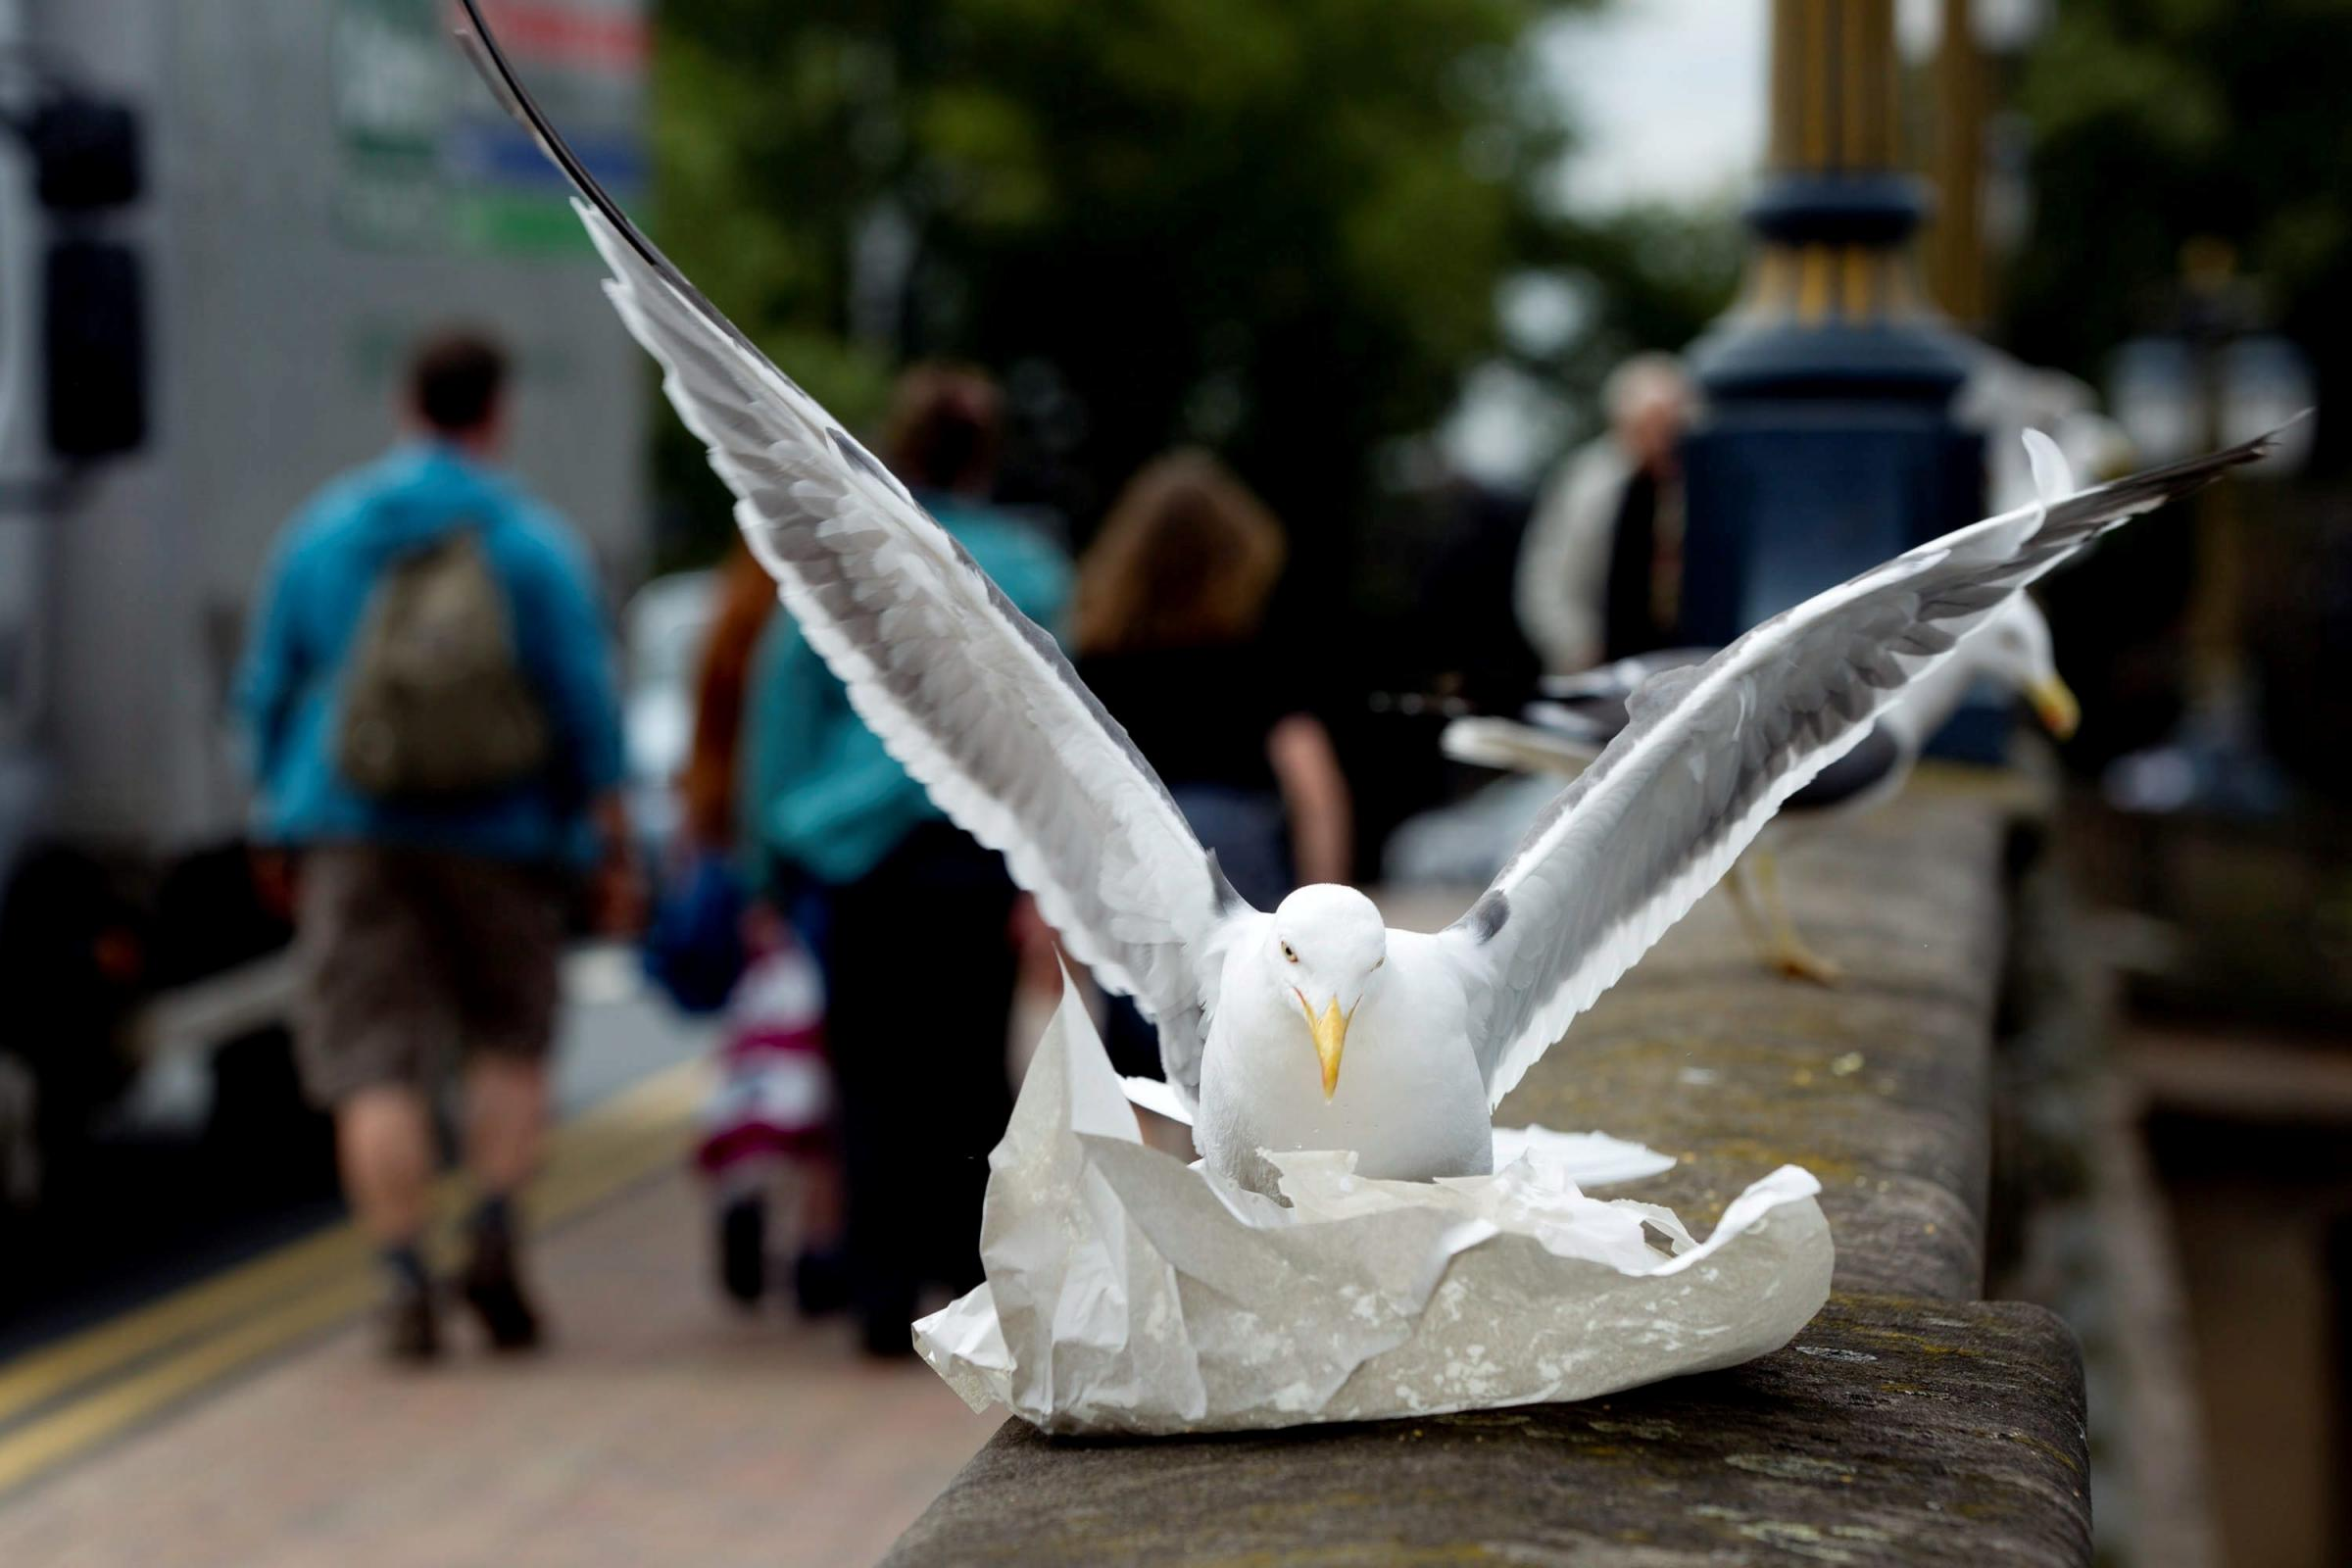 A SEAGULL: Feasting on chips in Worcester